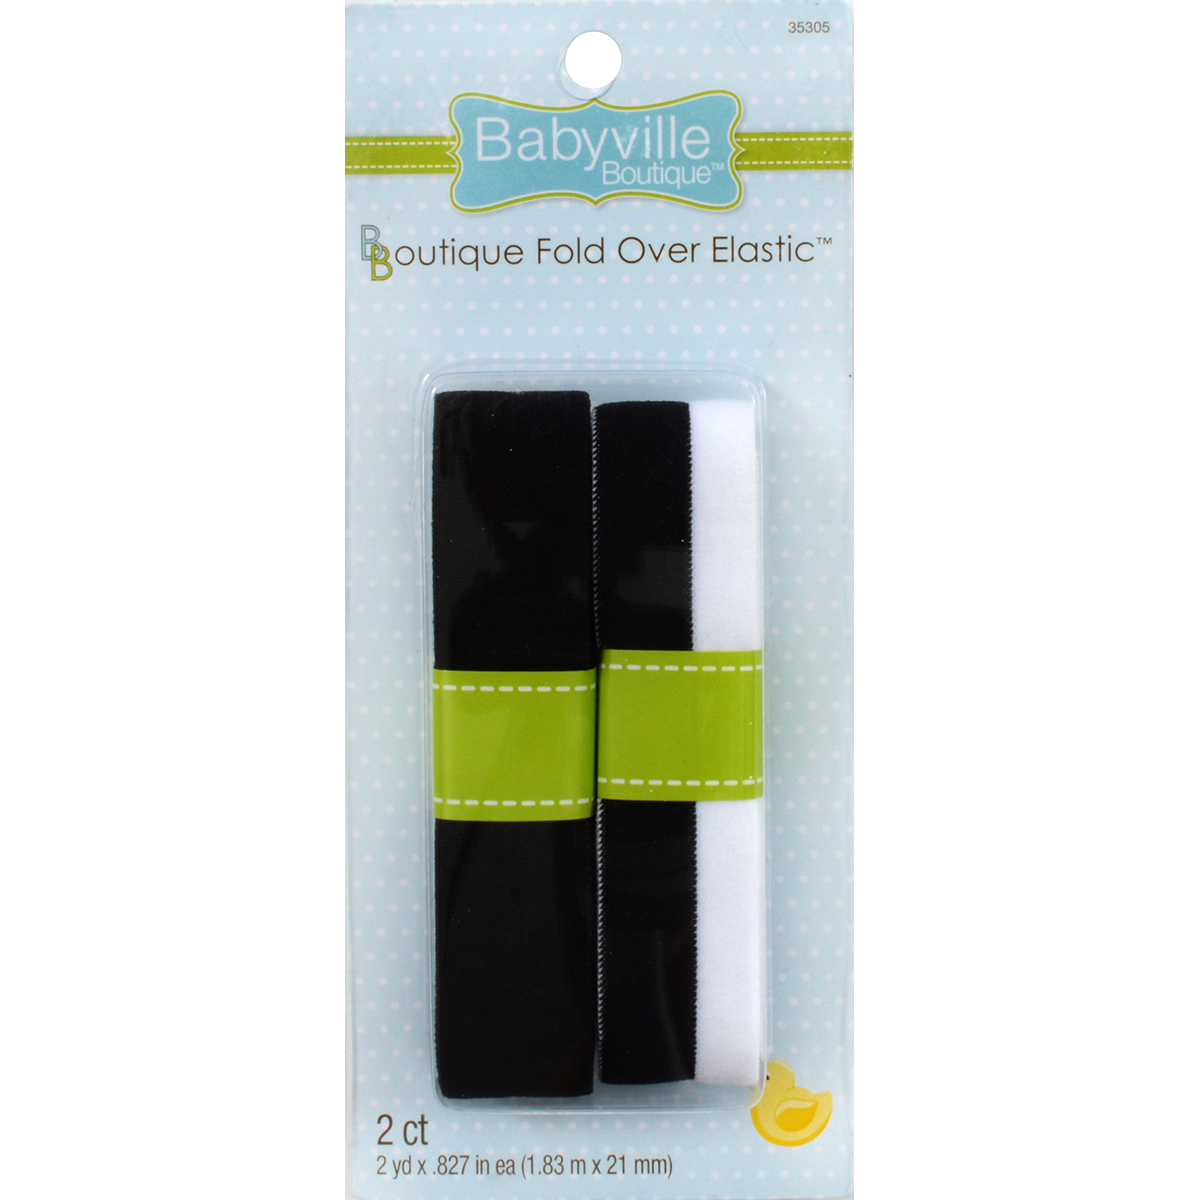 "Babyville Boutique Fold-Over Elastic 1/""-Black /& 2-Tone 350E-05"